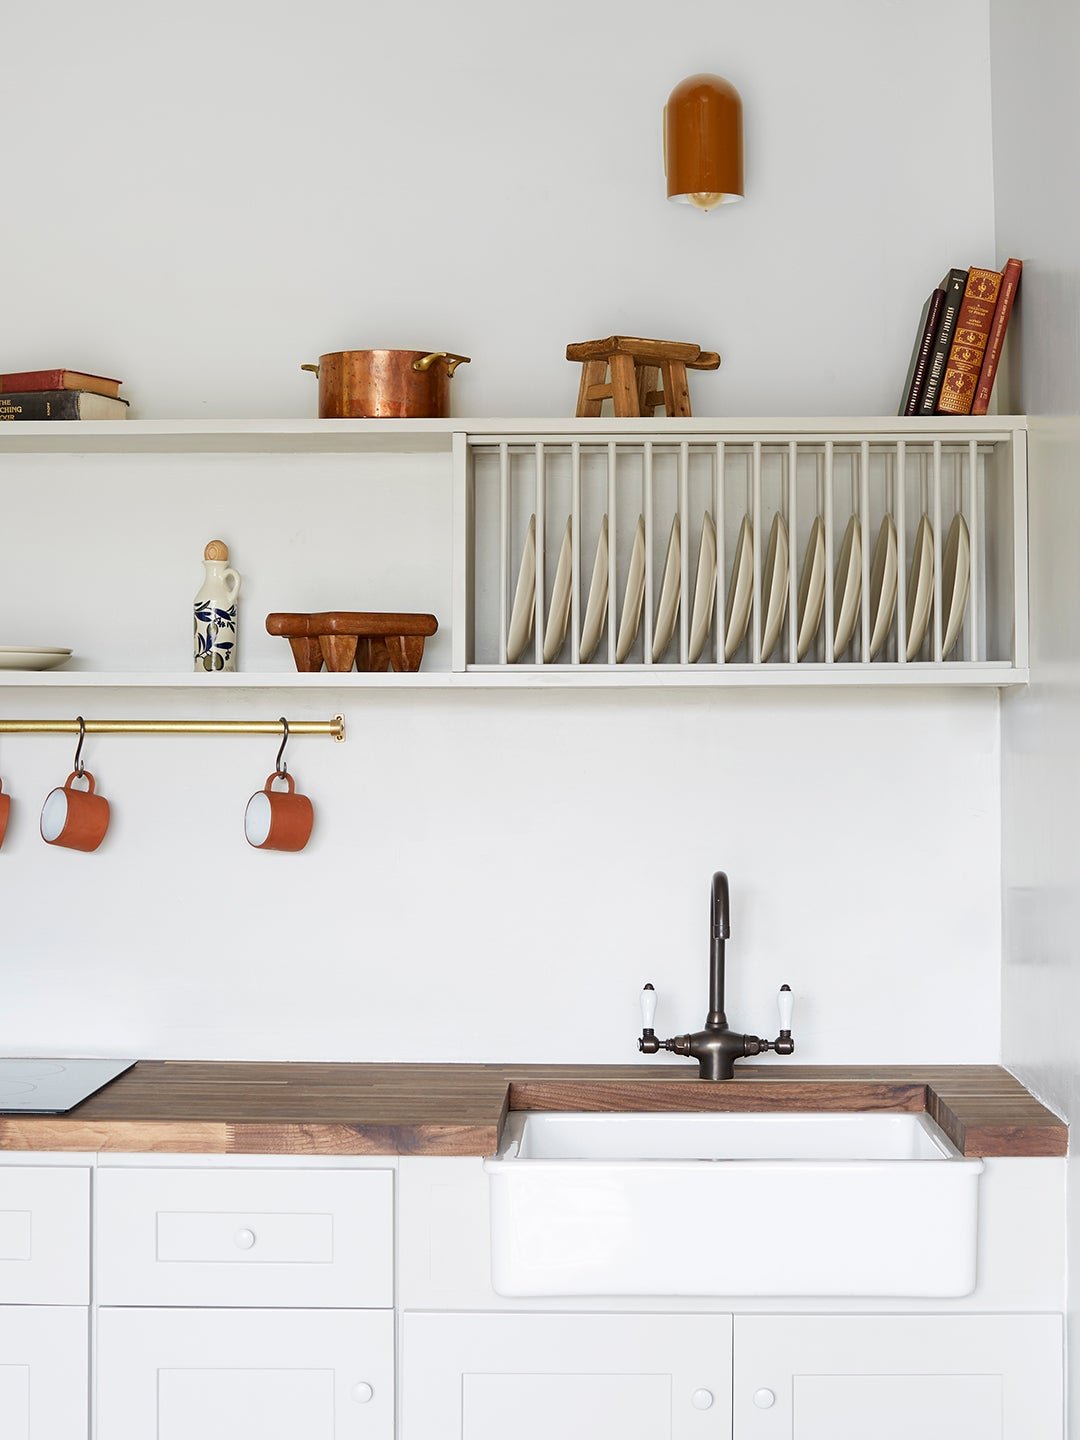 Kitchenette with open shelving